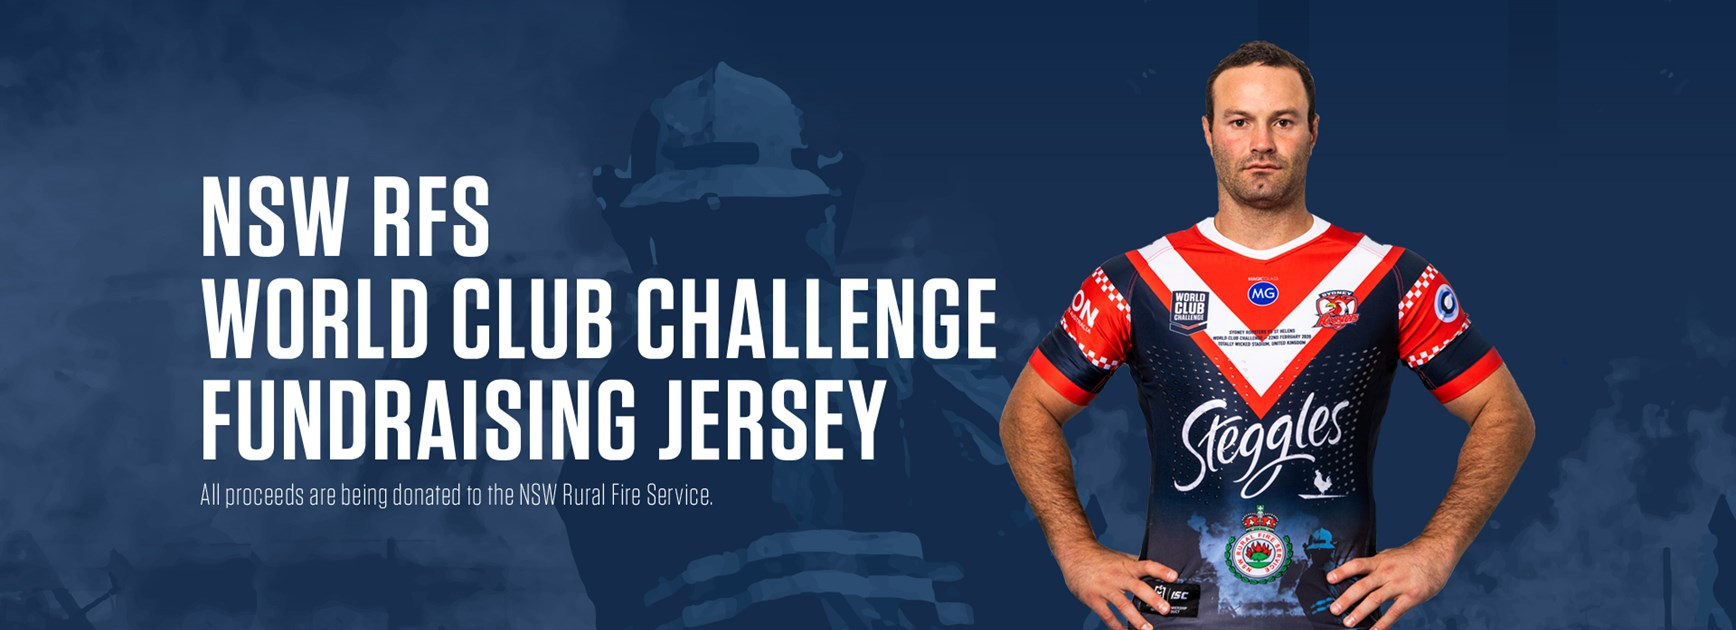 Roosters to wear special World Club Challenge jersey to raise funds for NSW RFS